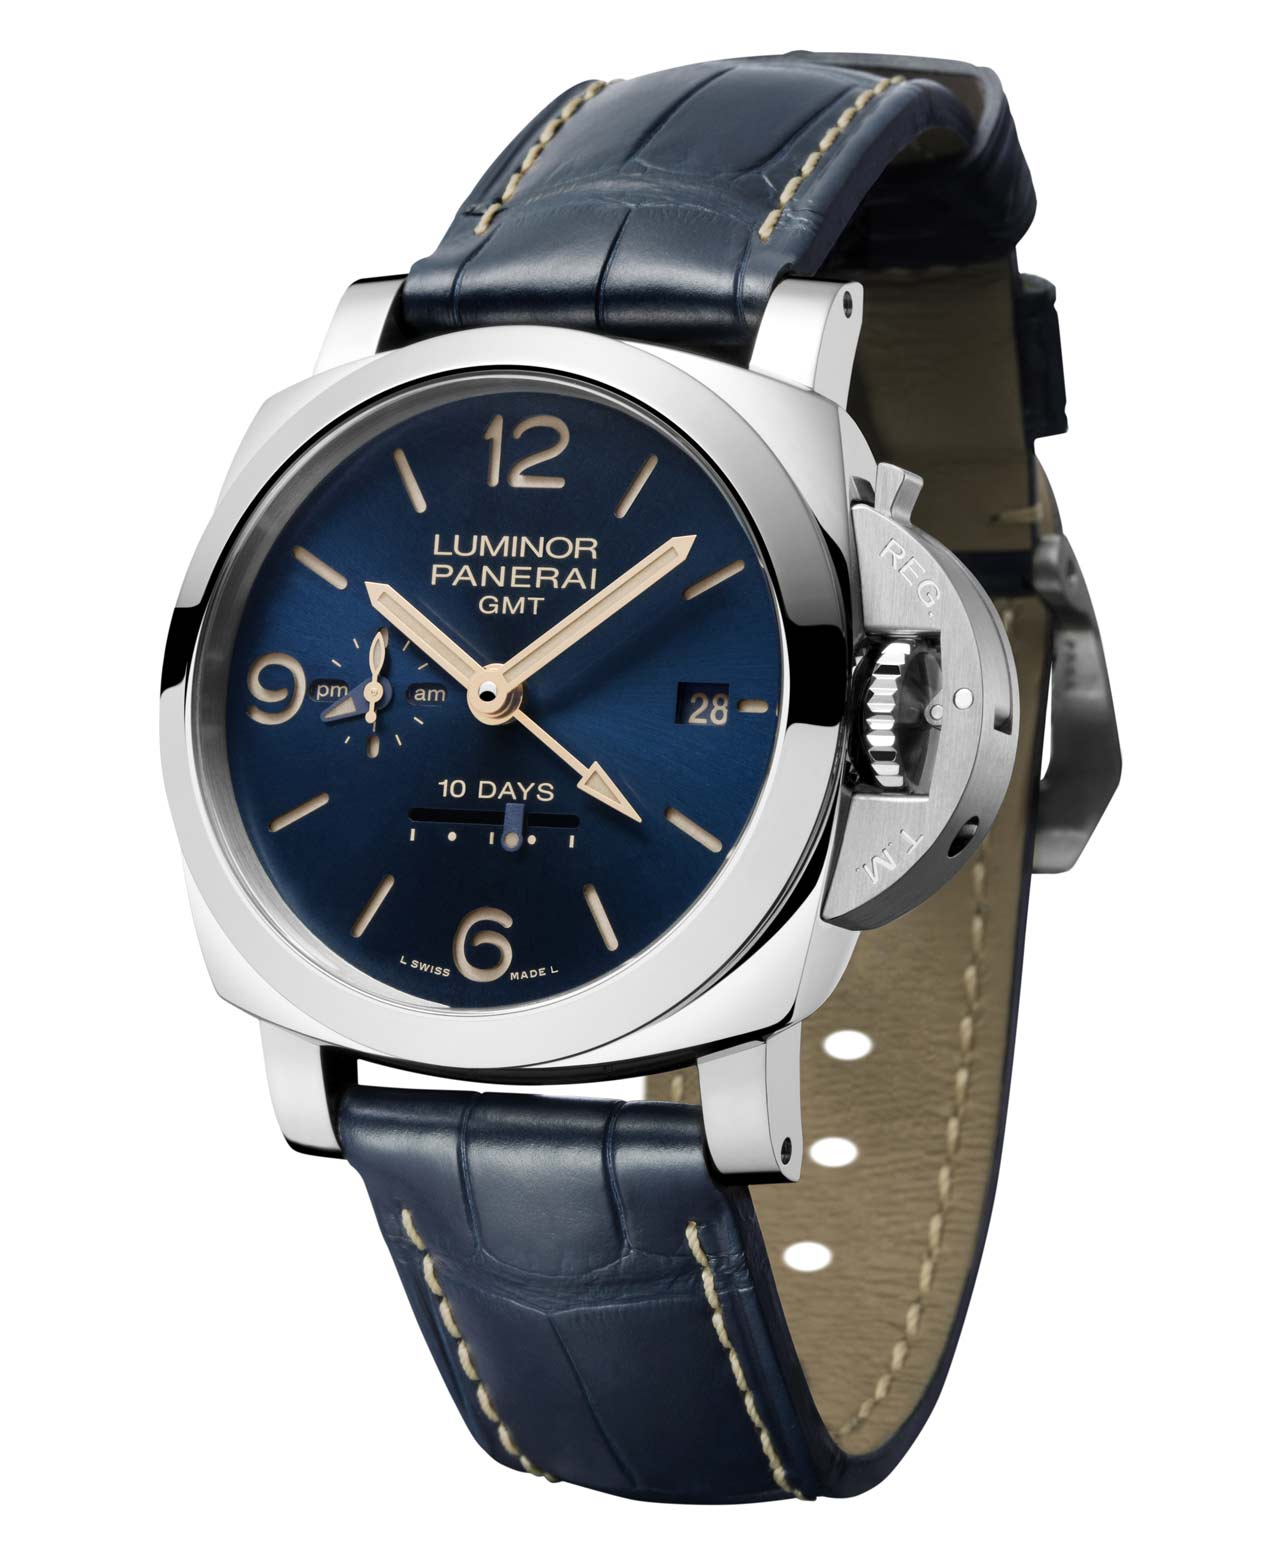 Panerai Luminor Gmt Function